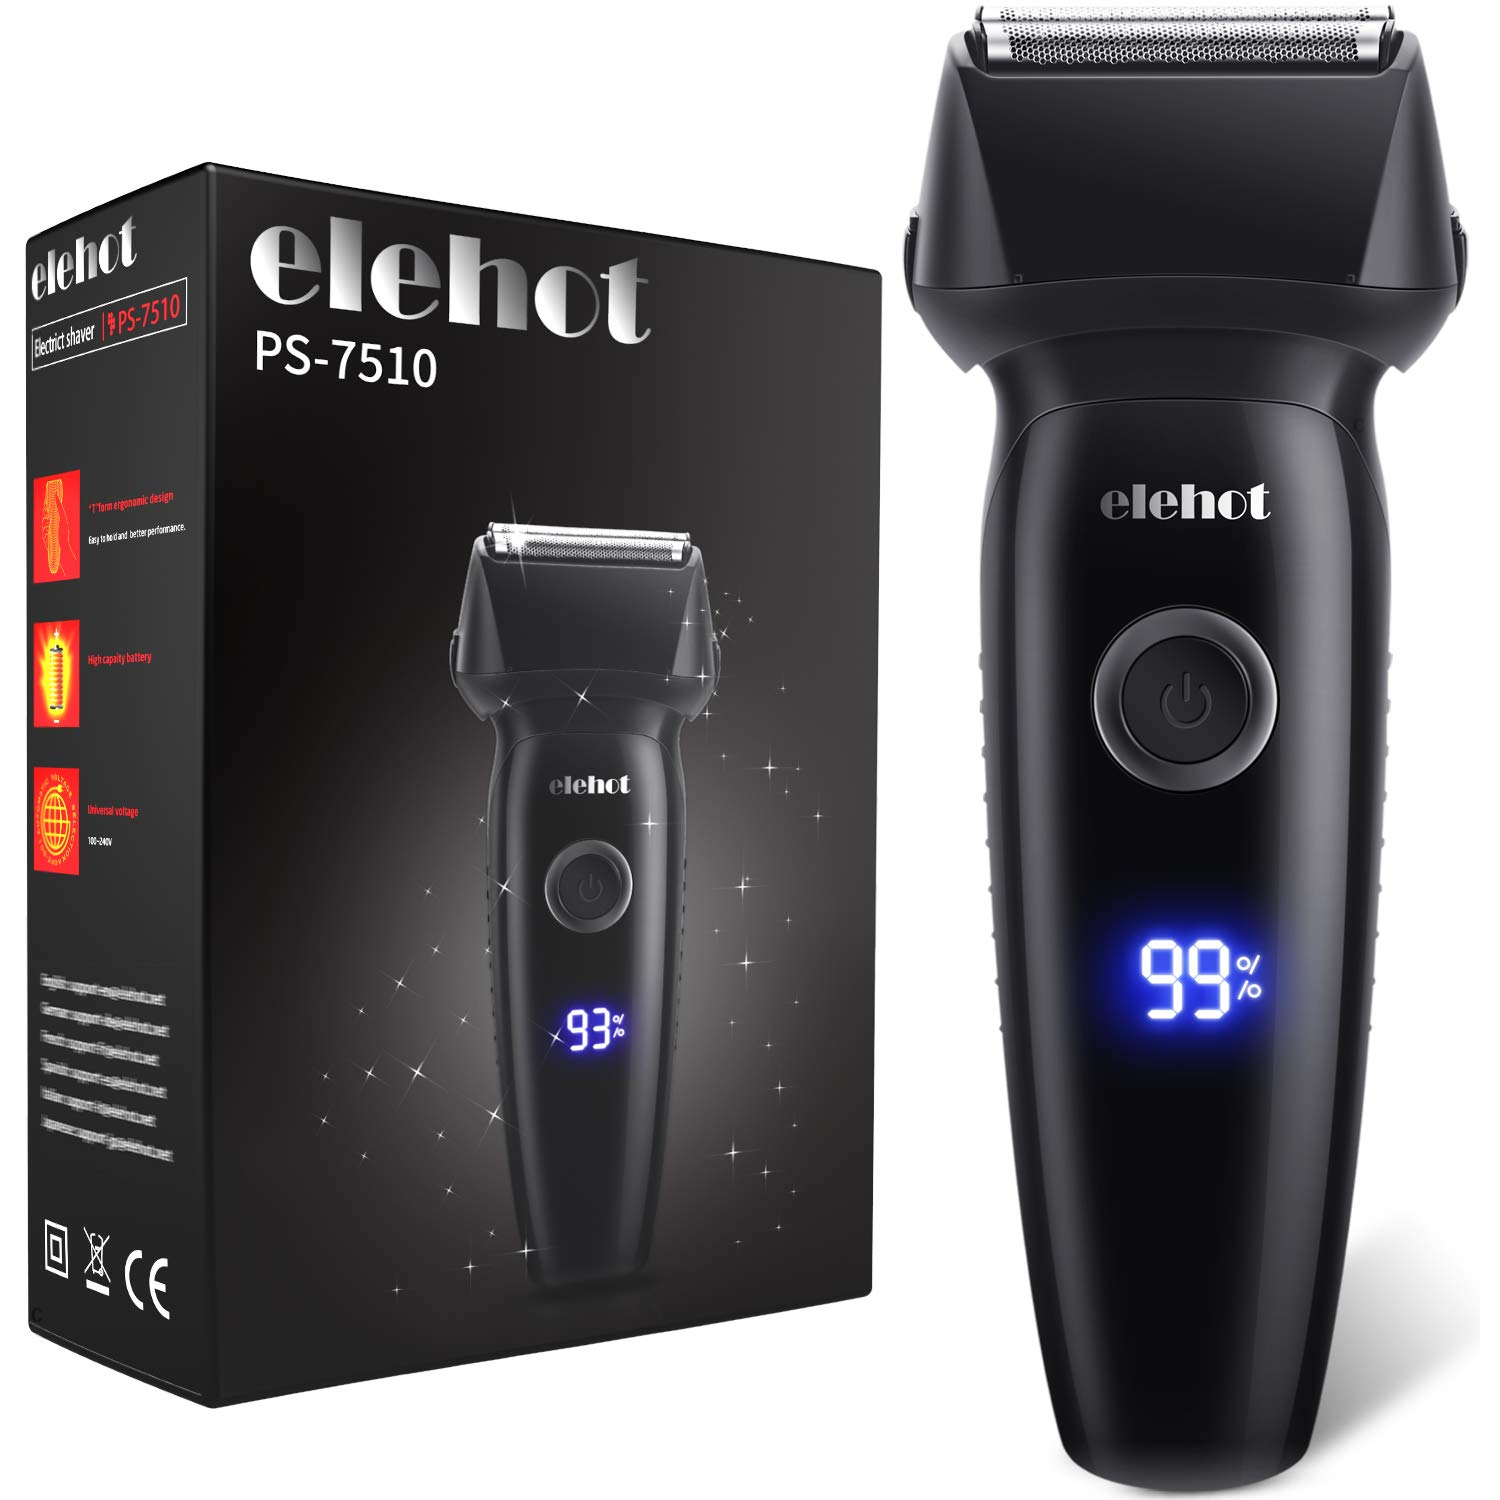 ELEHOT Electric Razor for Men Reachargeable Lithium-ion Electric Foil Shaver Cord Cordless Use with Slide-Up Trimmer